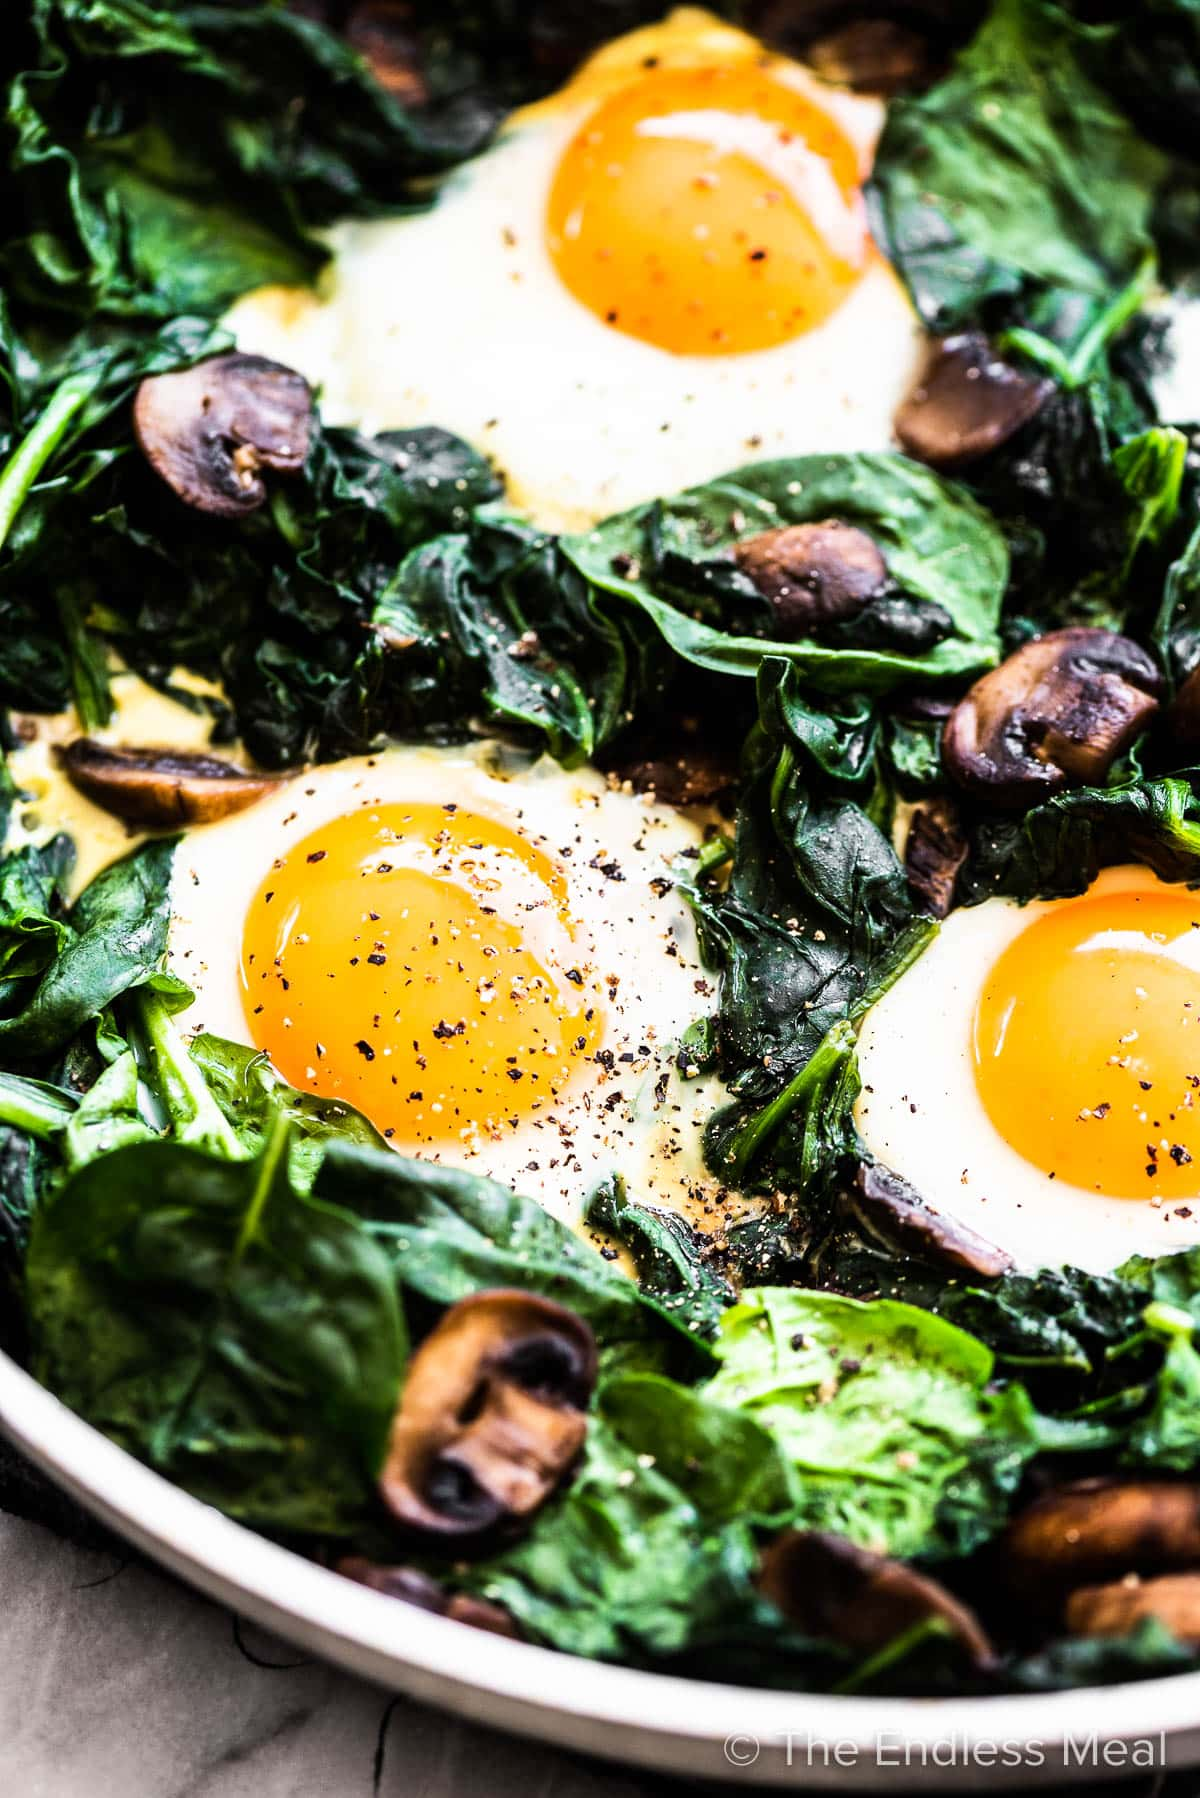 Fried eggs and spinach in a pan.